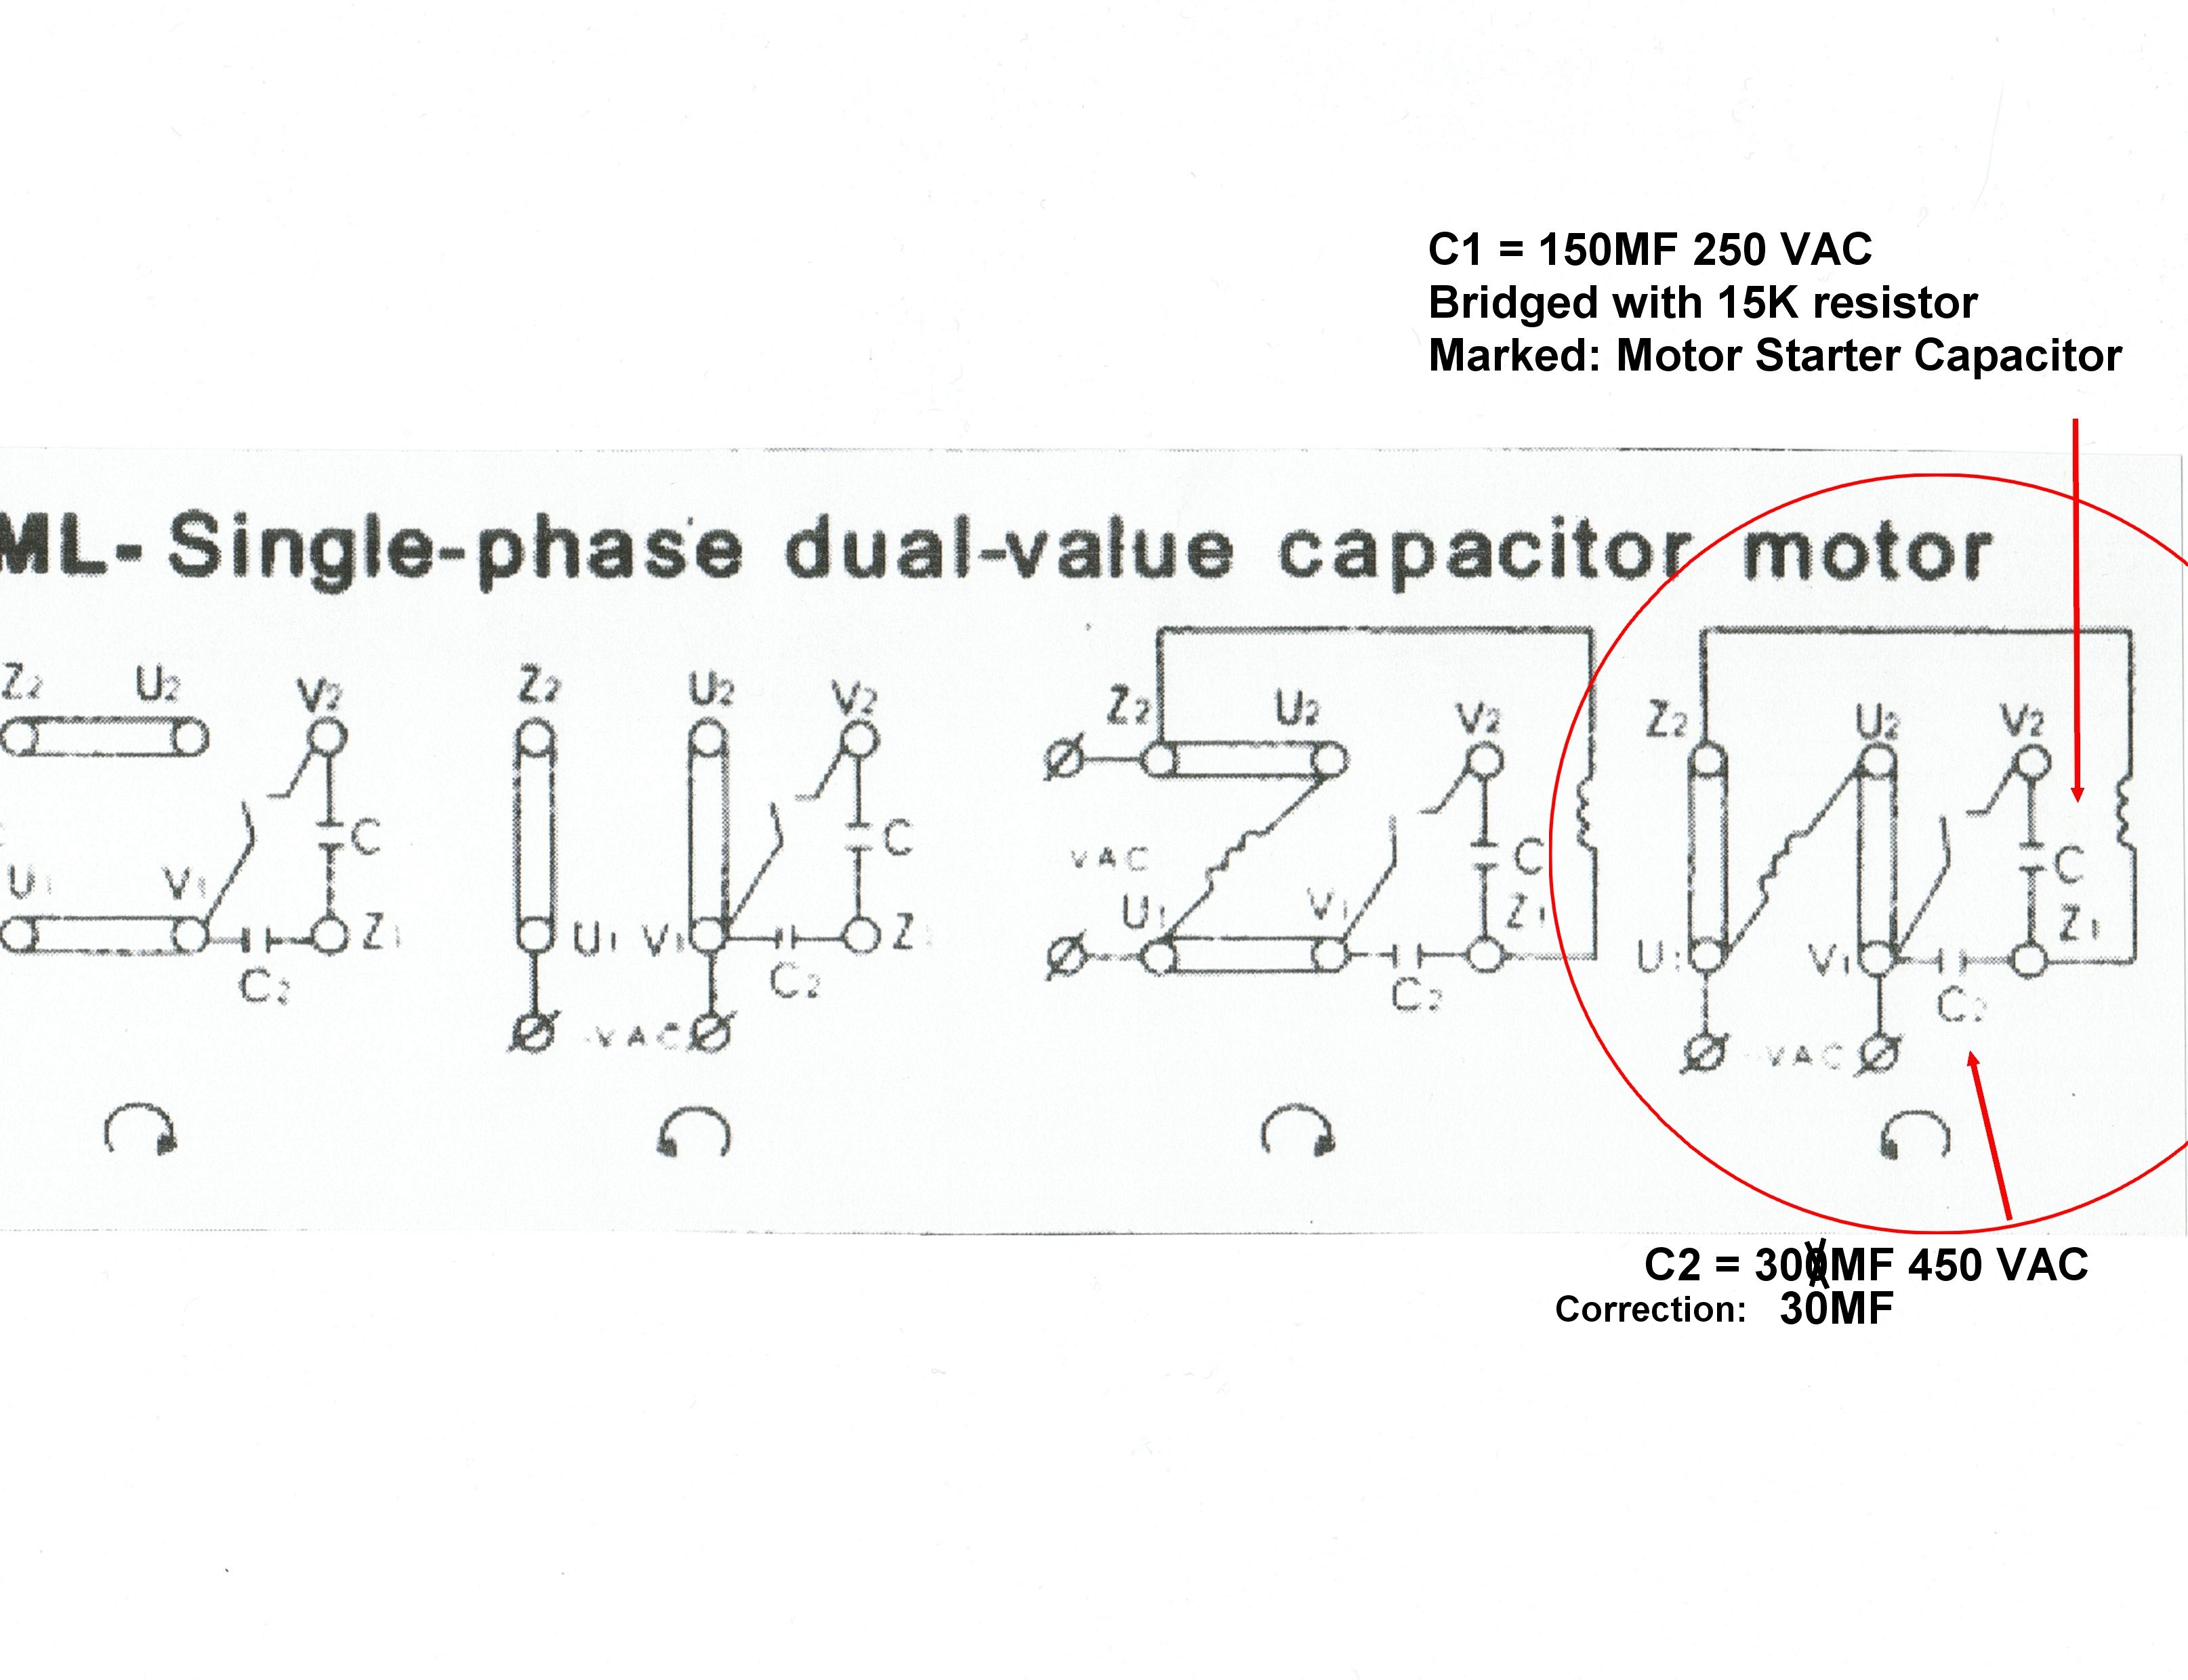 [DIAGRAM_38IS]  2F3E 115 Volt Single Phase Motor Wiring Diagrams | Wiring Library | Wiring Diagram Of Single Phase Motor |  | Wiring Library